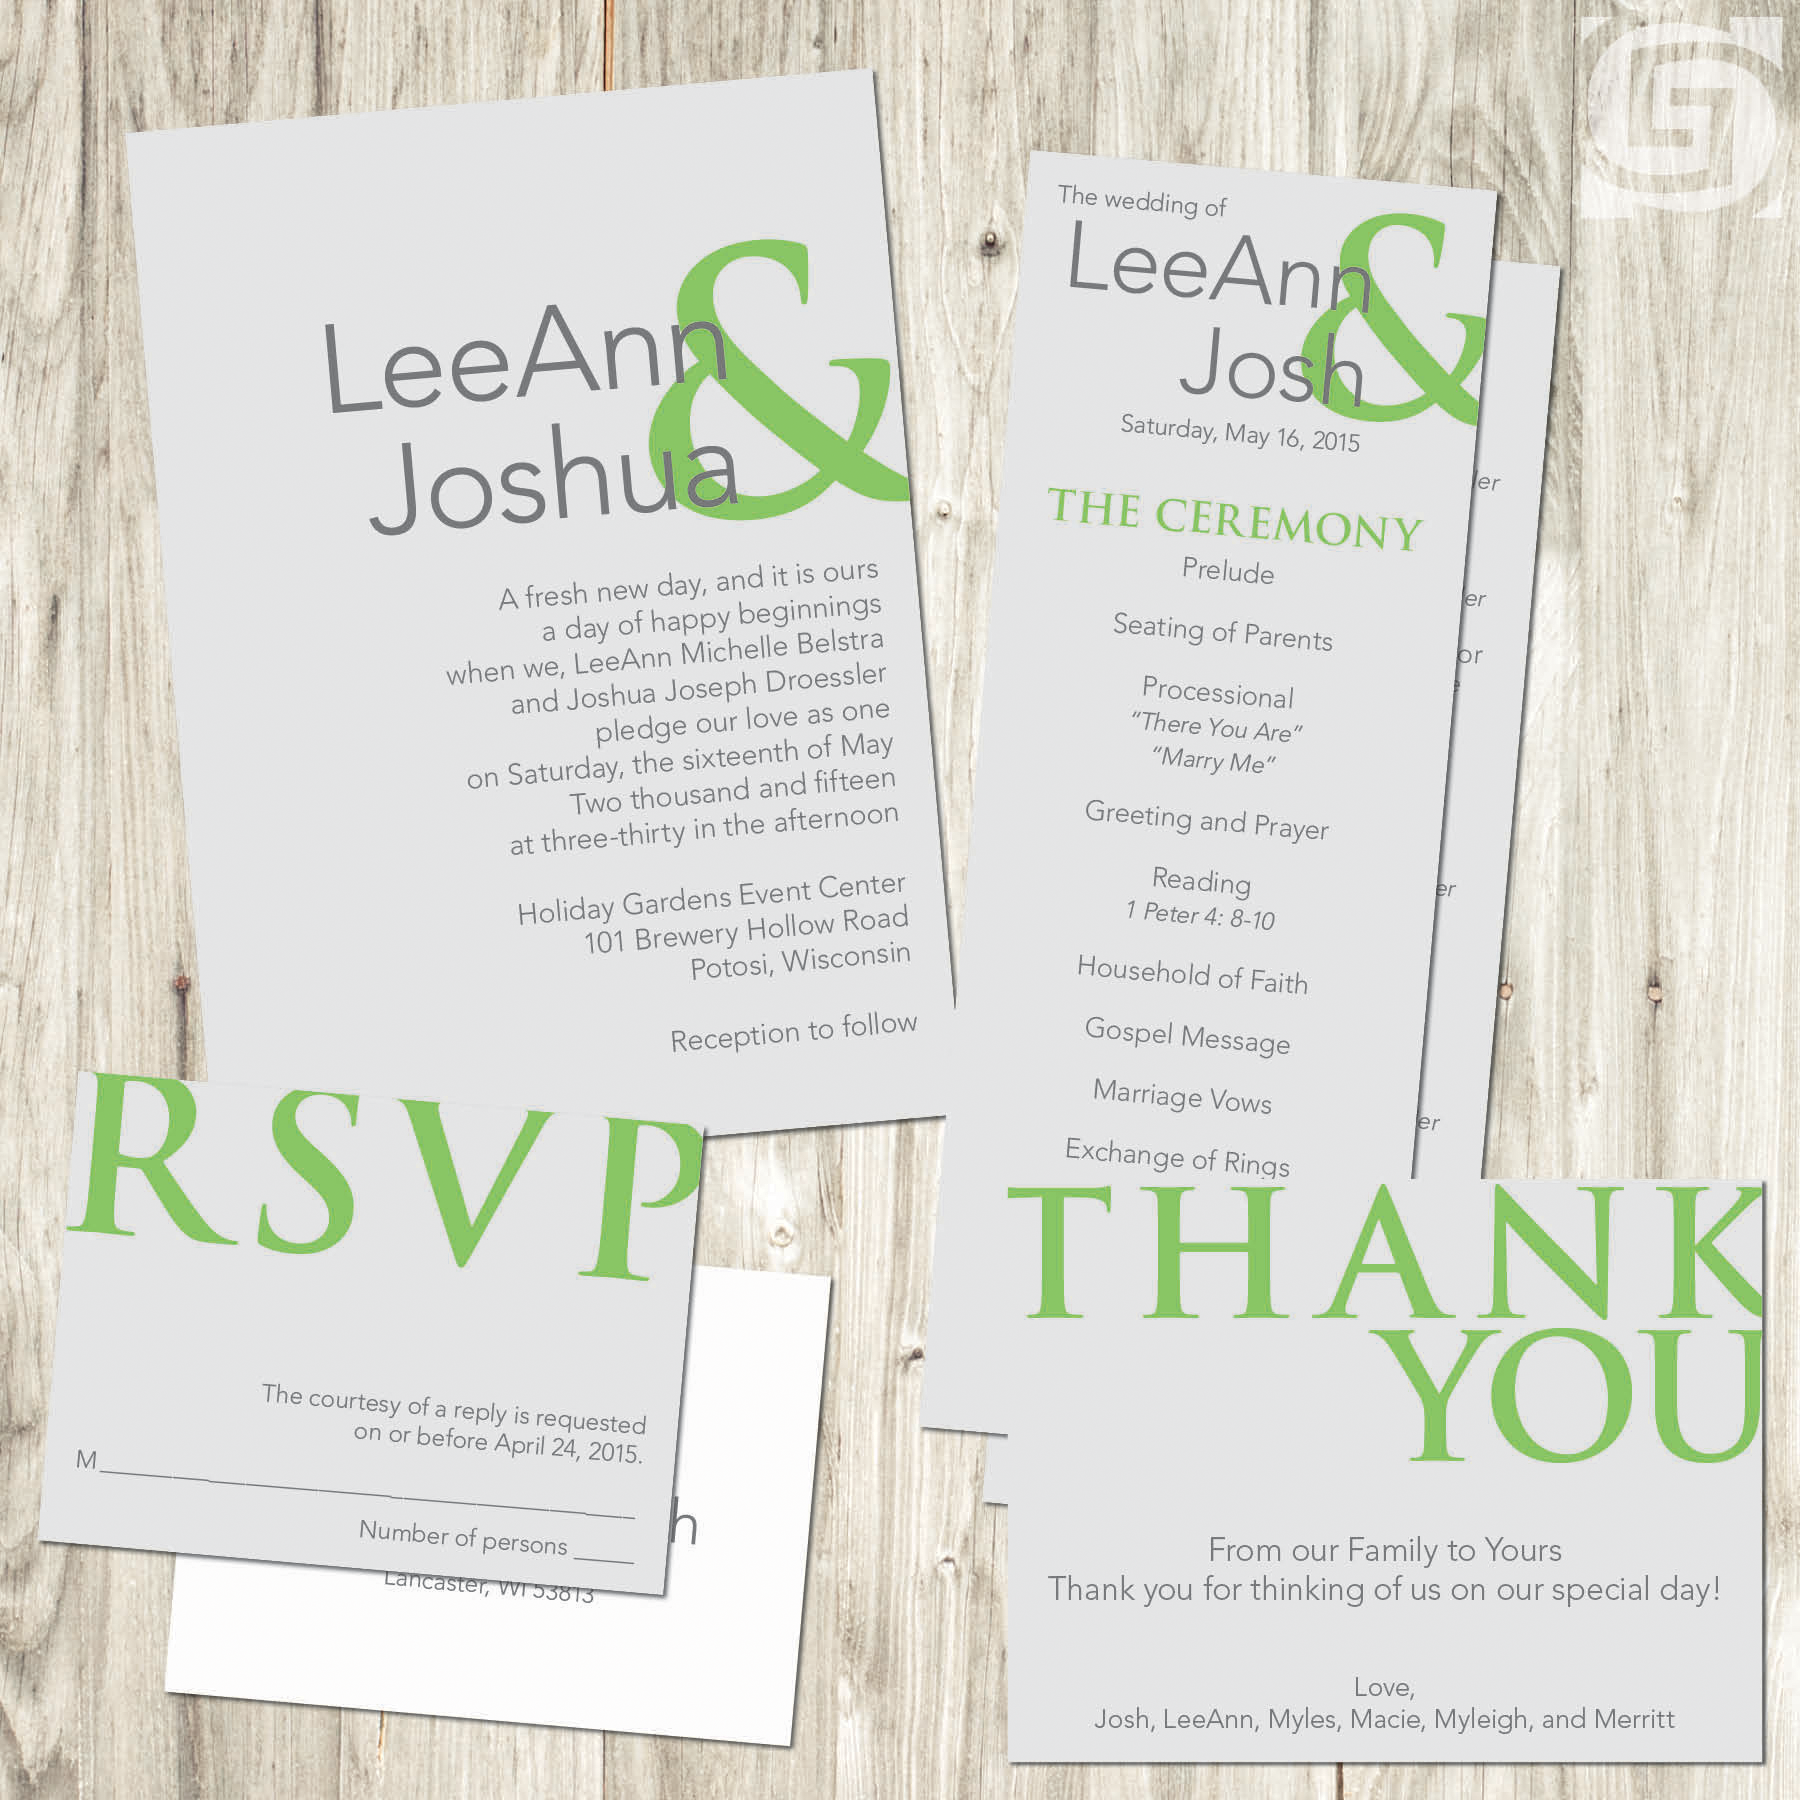 Wedding invitations wolfs grantland graphics business forms postcards posters banners signs invitations for all occasions programs holiday cards thank yous magicingreecefo Images